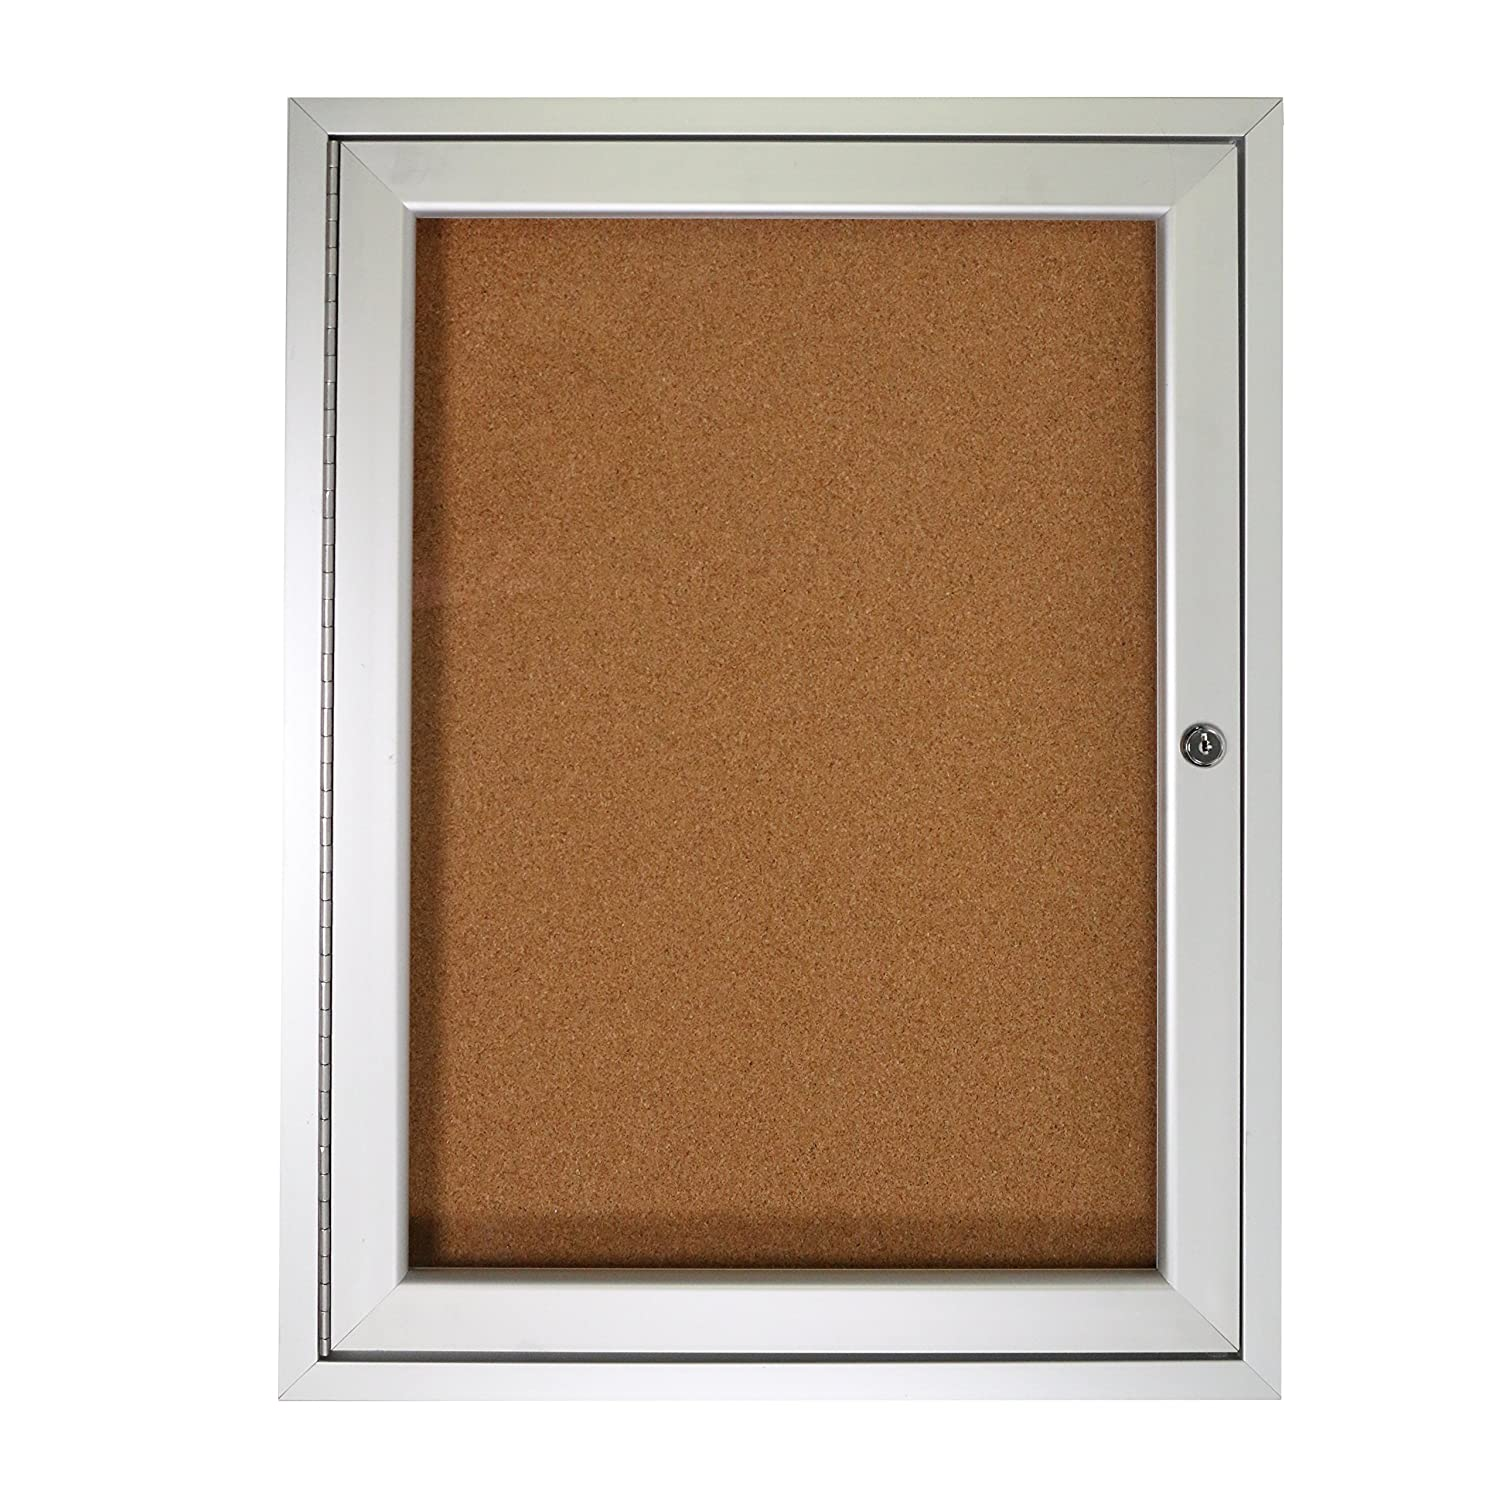 1 Door Enclosed Vinyl Bulletin Board Size: 24 x 18, Frame: Satin Aluminum, Backing: Standard Ghent PA12418K